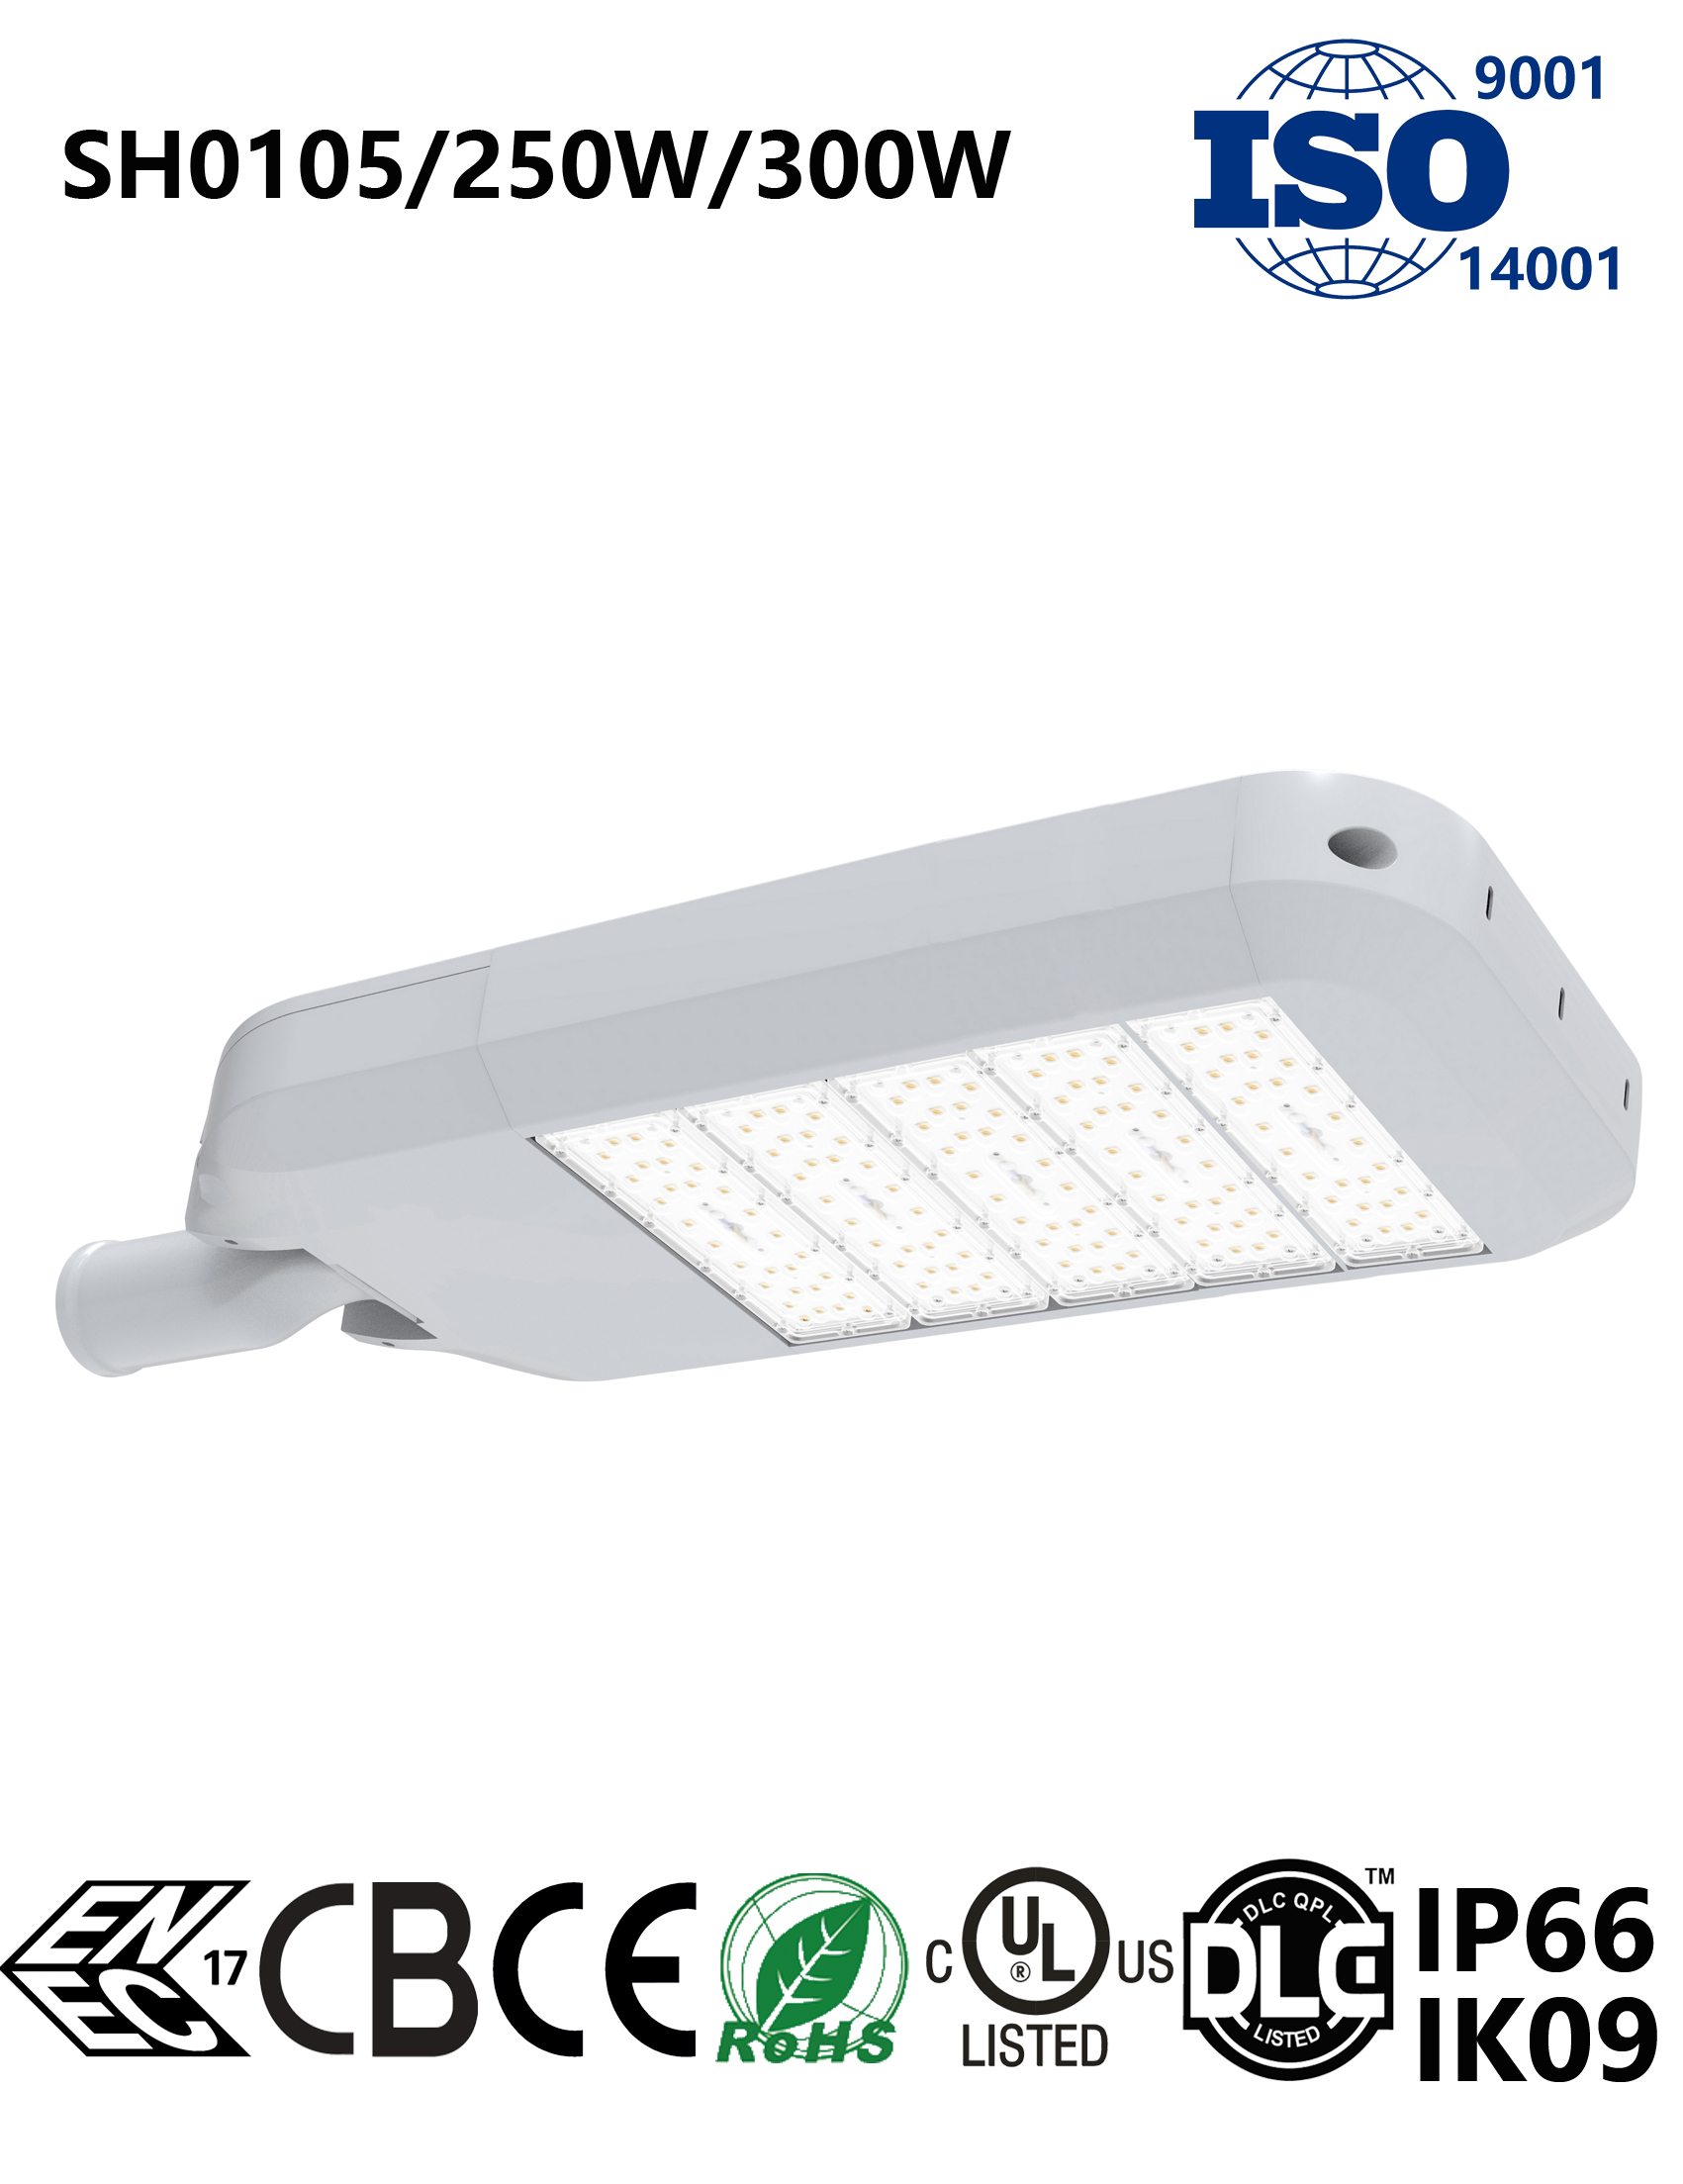 SH0105 250-300W LED Street Light